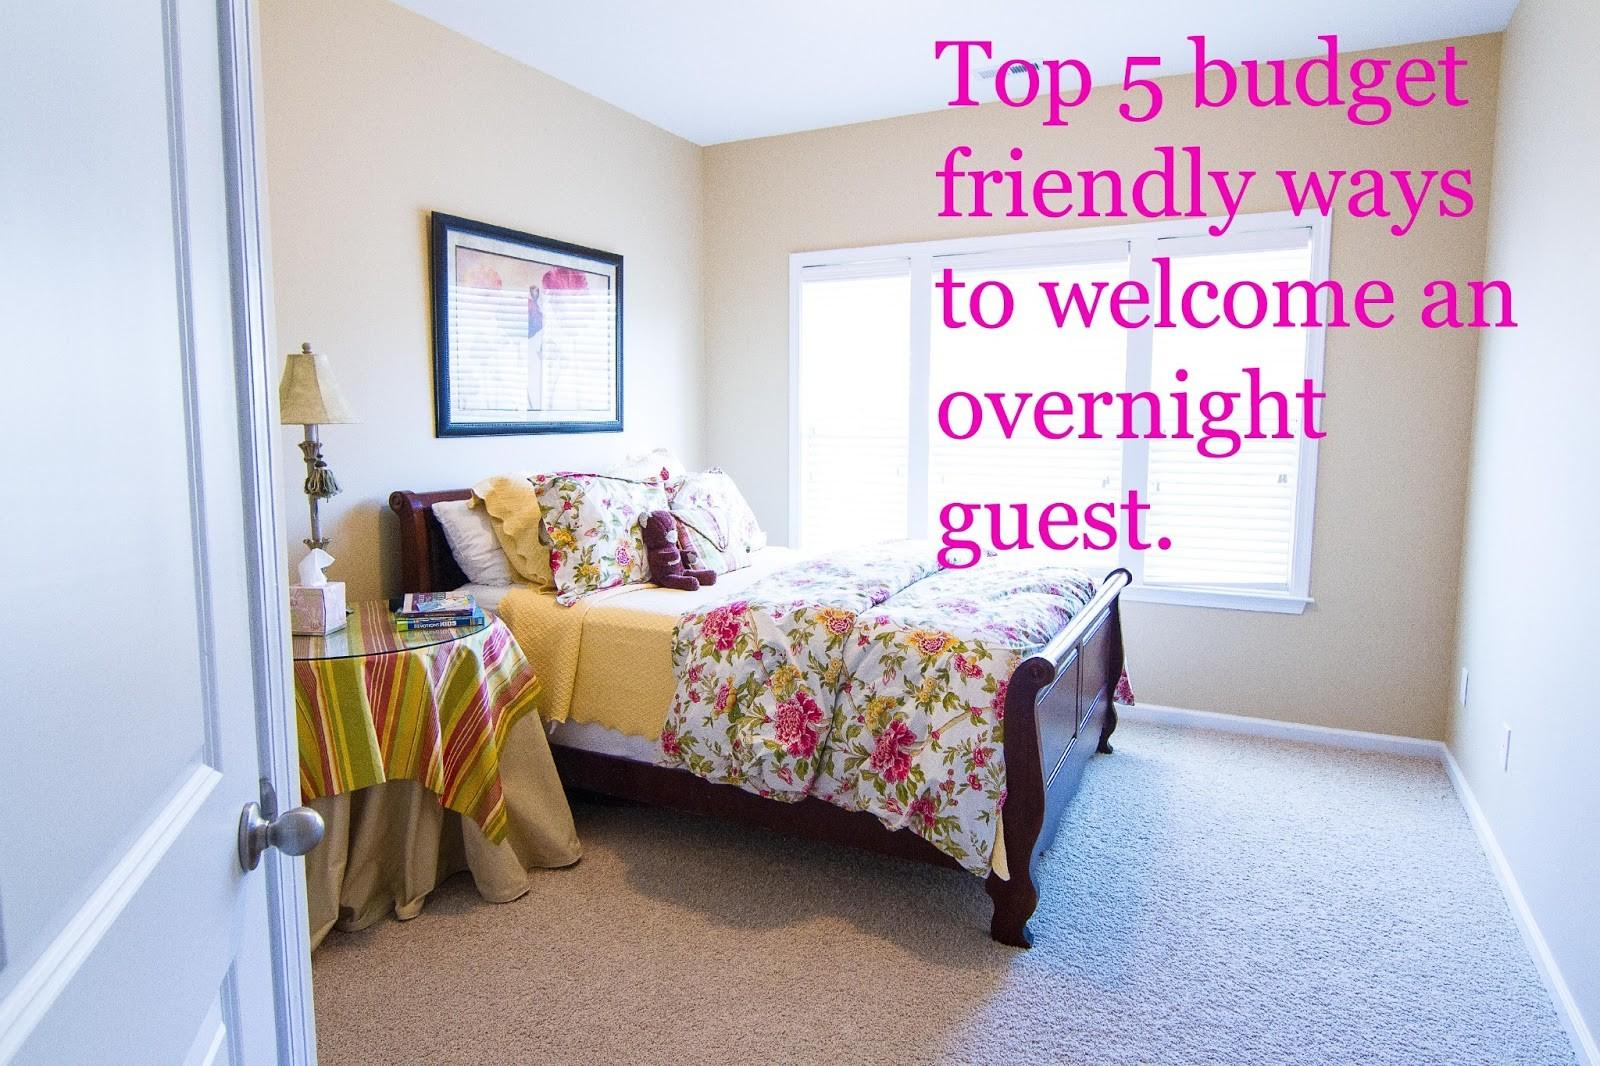 Guest Bedroom Decorating Ideas Budget Iron Blog